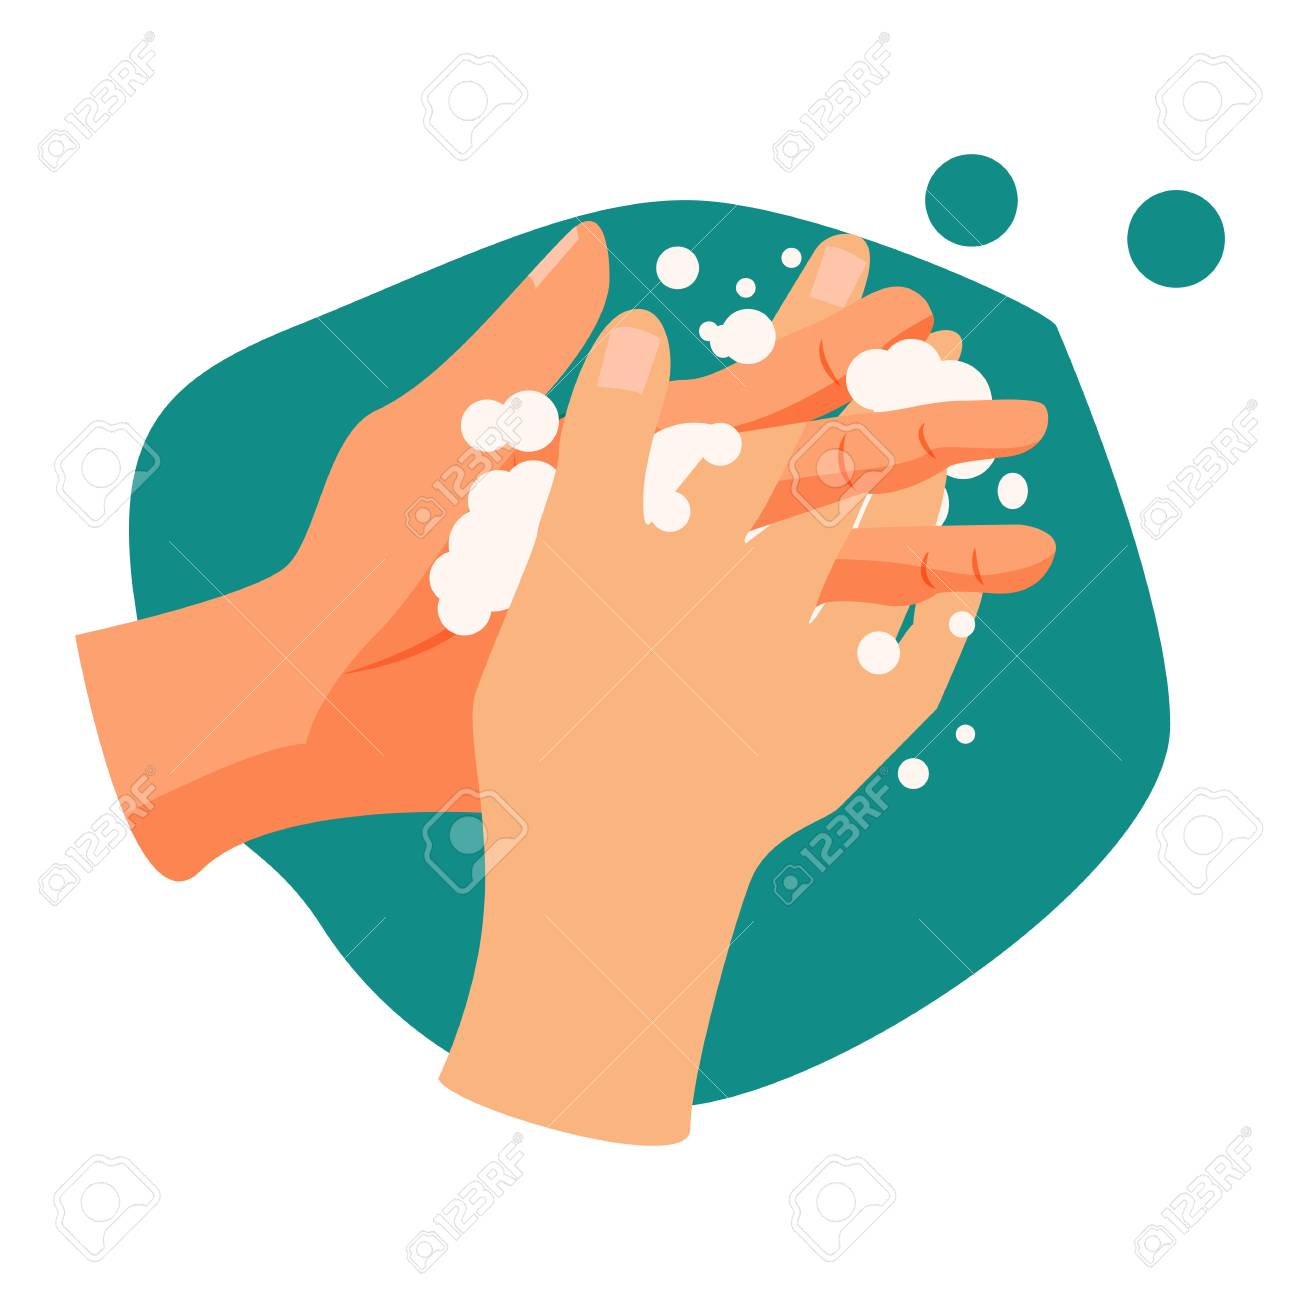 Handwashing illustration. Water, washing hands, cleaning. Hygiene concept. Vector illustration can be used for healthcare, skincare, hygiene - 124799042